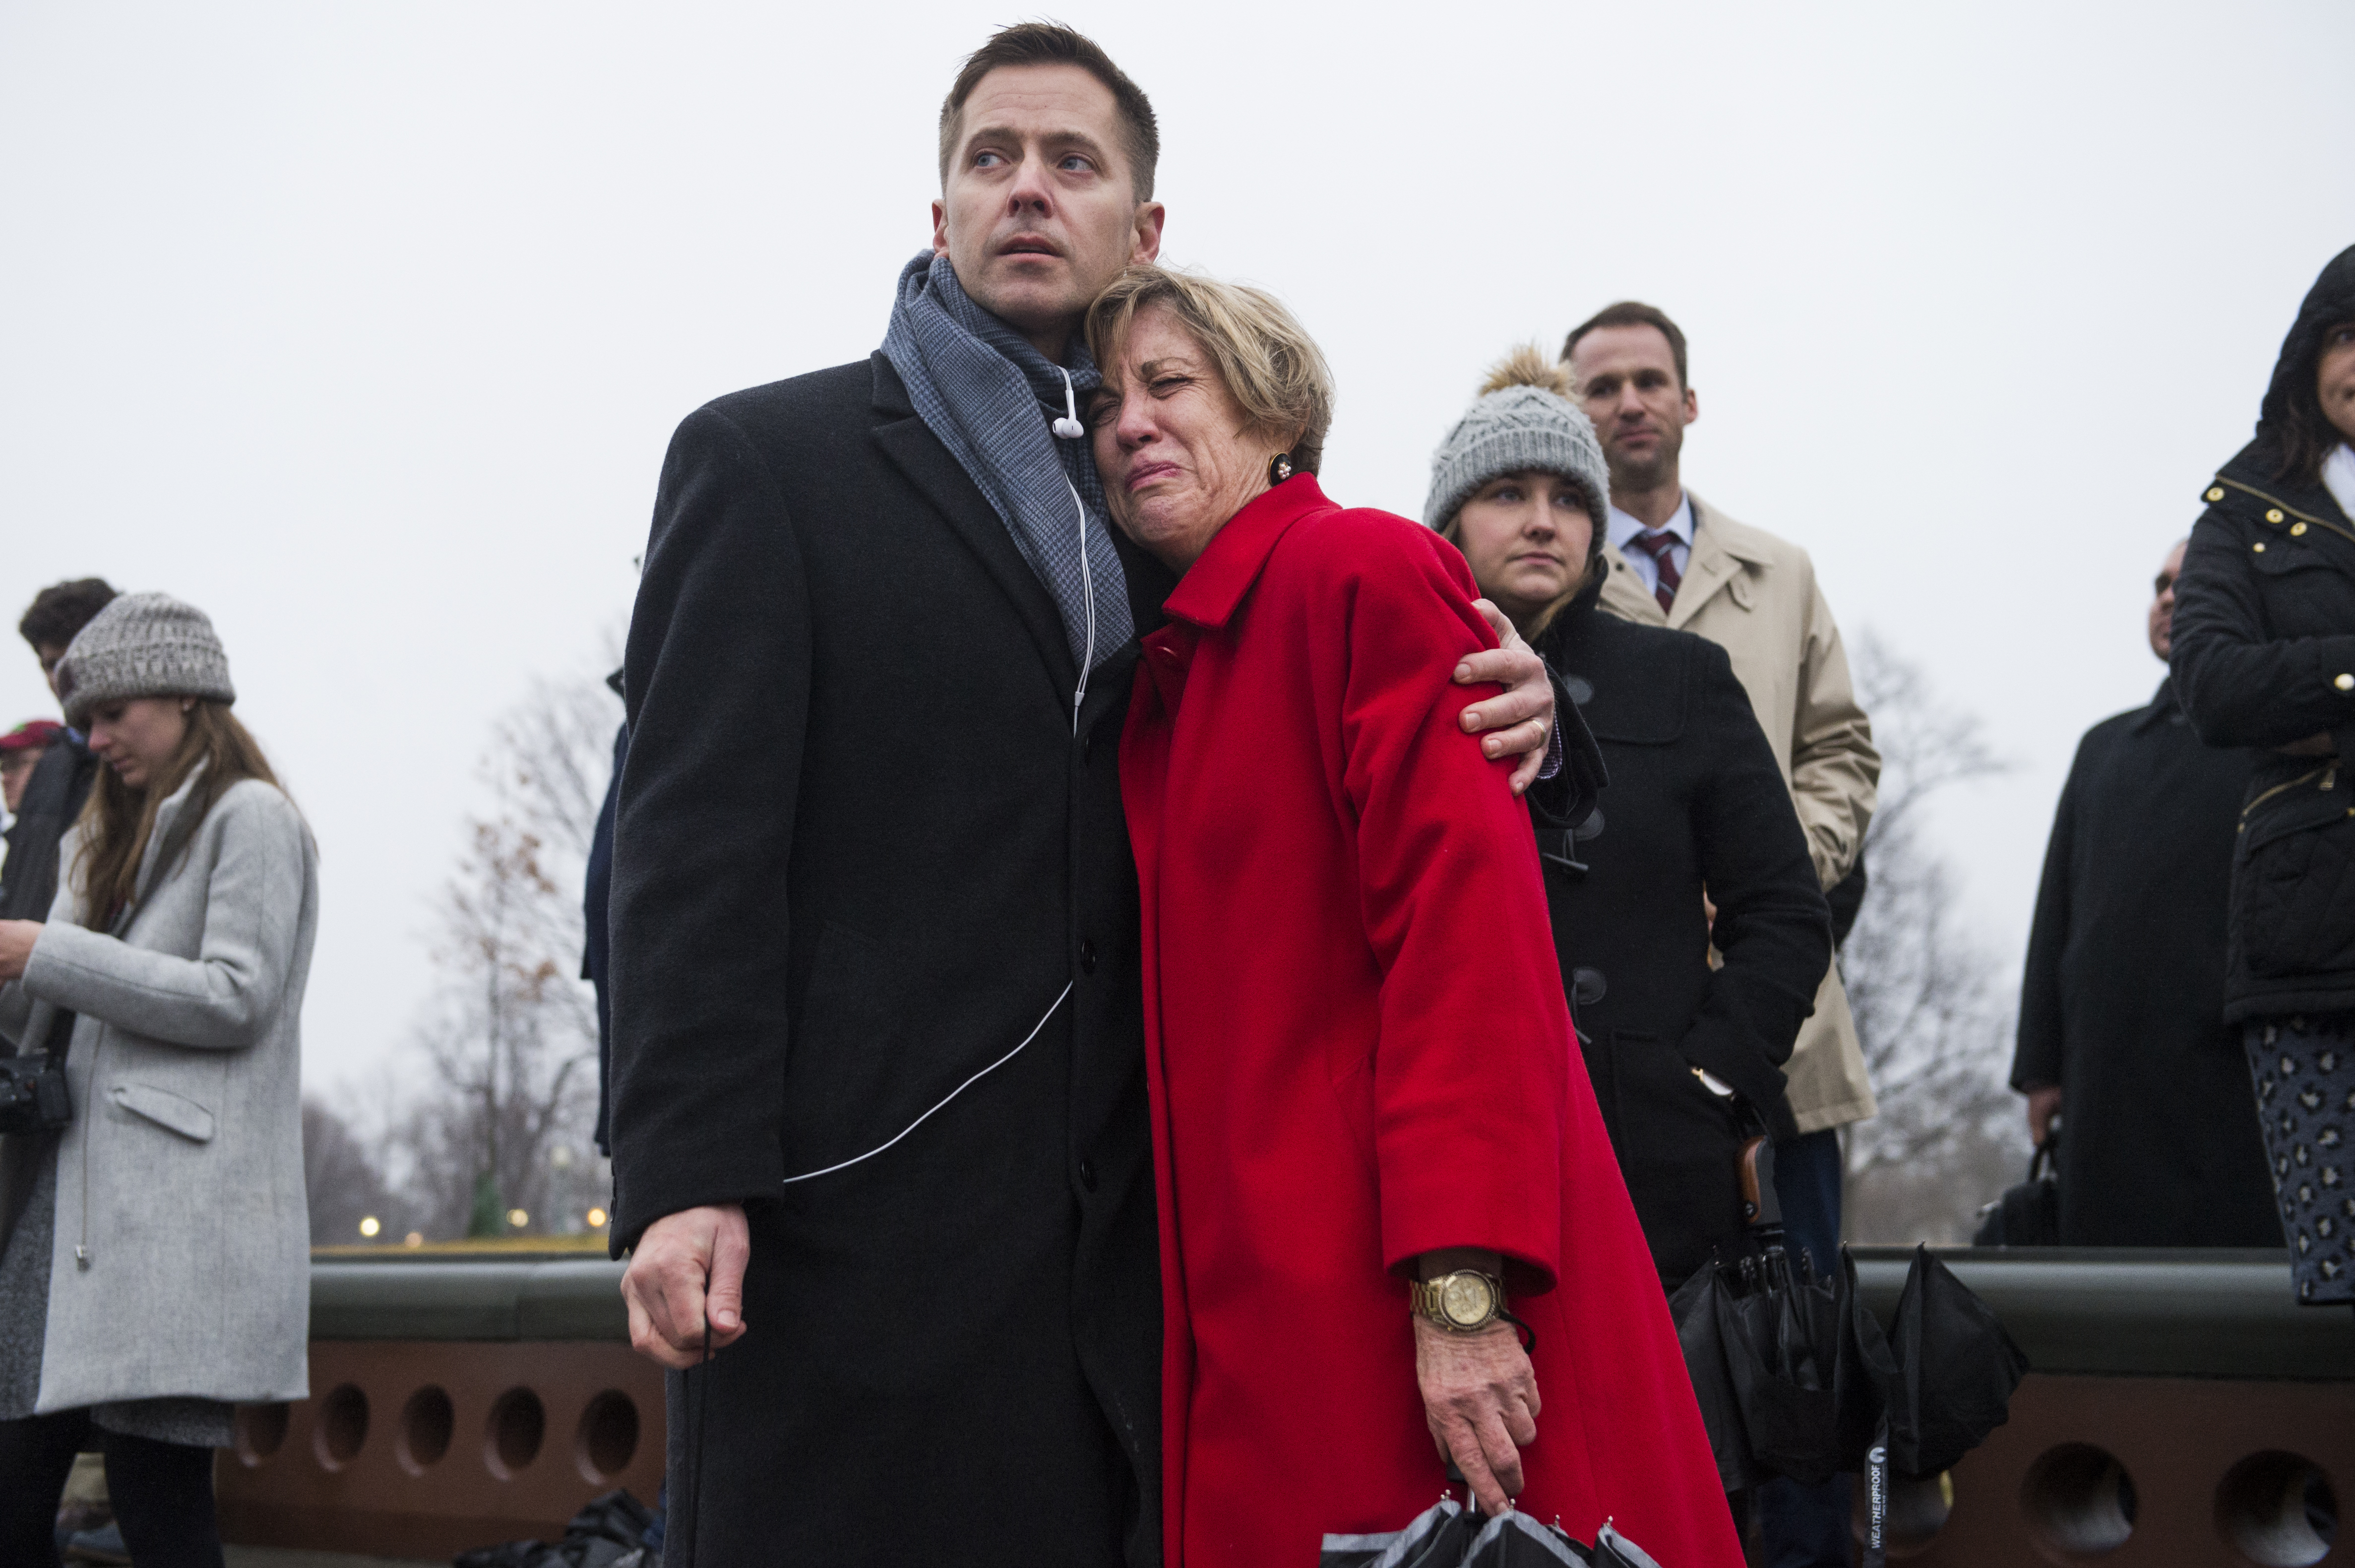 UNITED STATES - FEBRUARY 12: Bridgett Taylor and Pete Filon, former aides to the late Rep. John Dingell, D-Mich., look on, as members pay respects to Dingell as the hearse containing his casket stops at the House Steps on the East Front of the Capitol on Tuesday, February 12, 2019. (Photo By Tom Williams/CQ Roll Call)